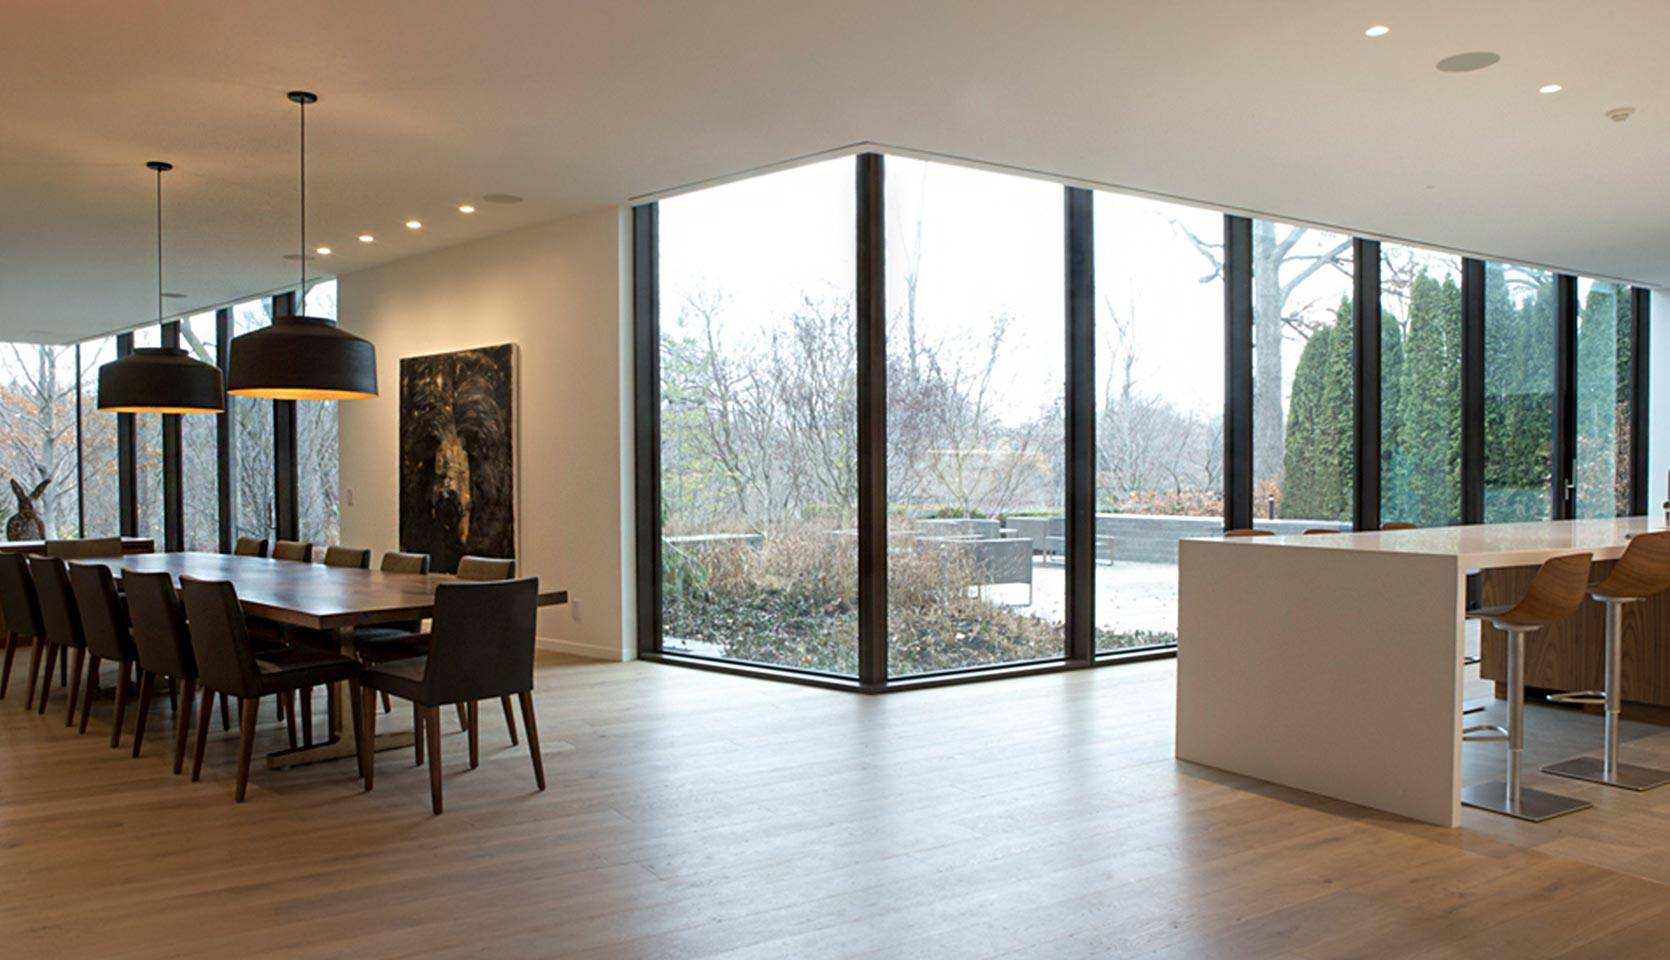 severnwoods-modern-rosedale-house-kitchen-and-dining-room-looking-into-backyard-through-glass-window-walls